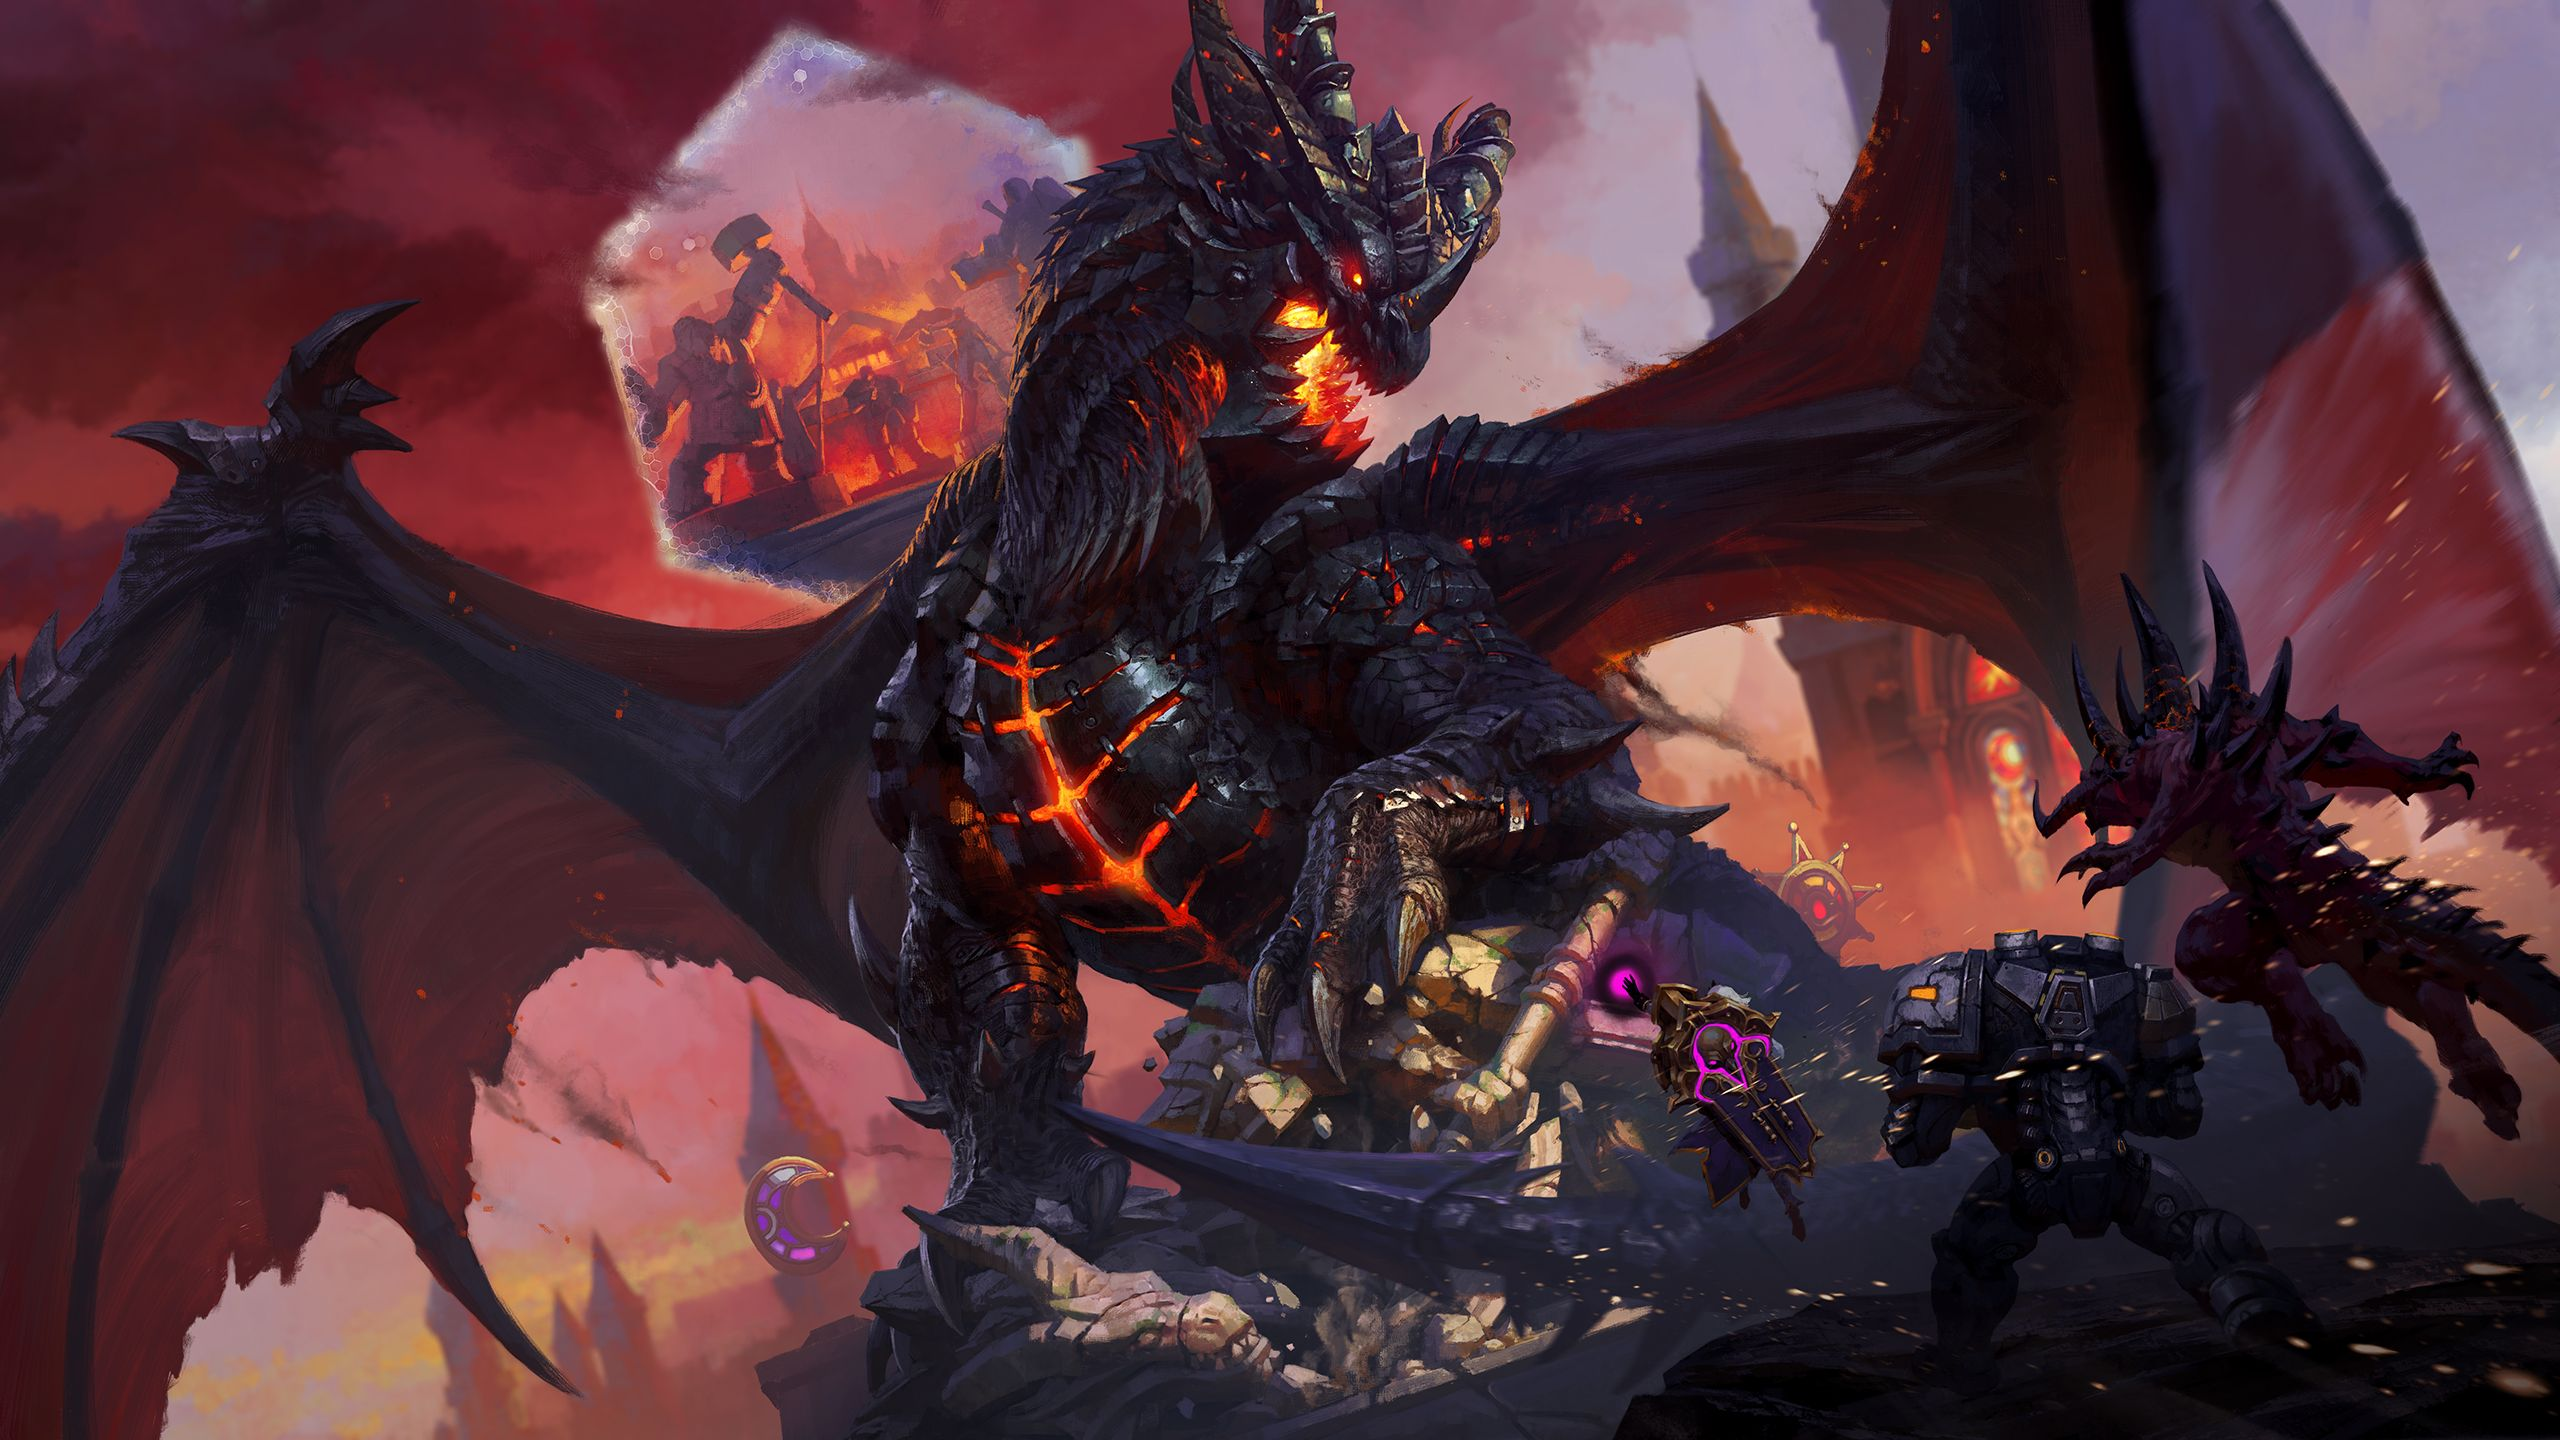 H49_Deathwing_Homescreen_2560x1440.jpg